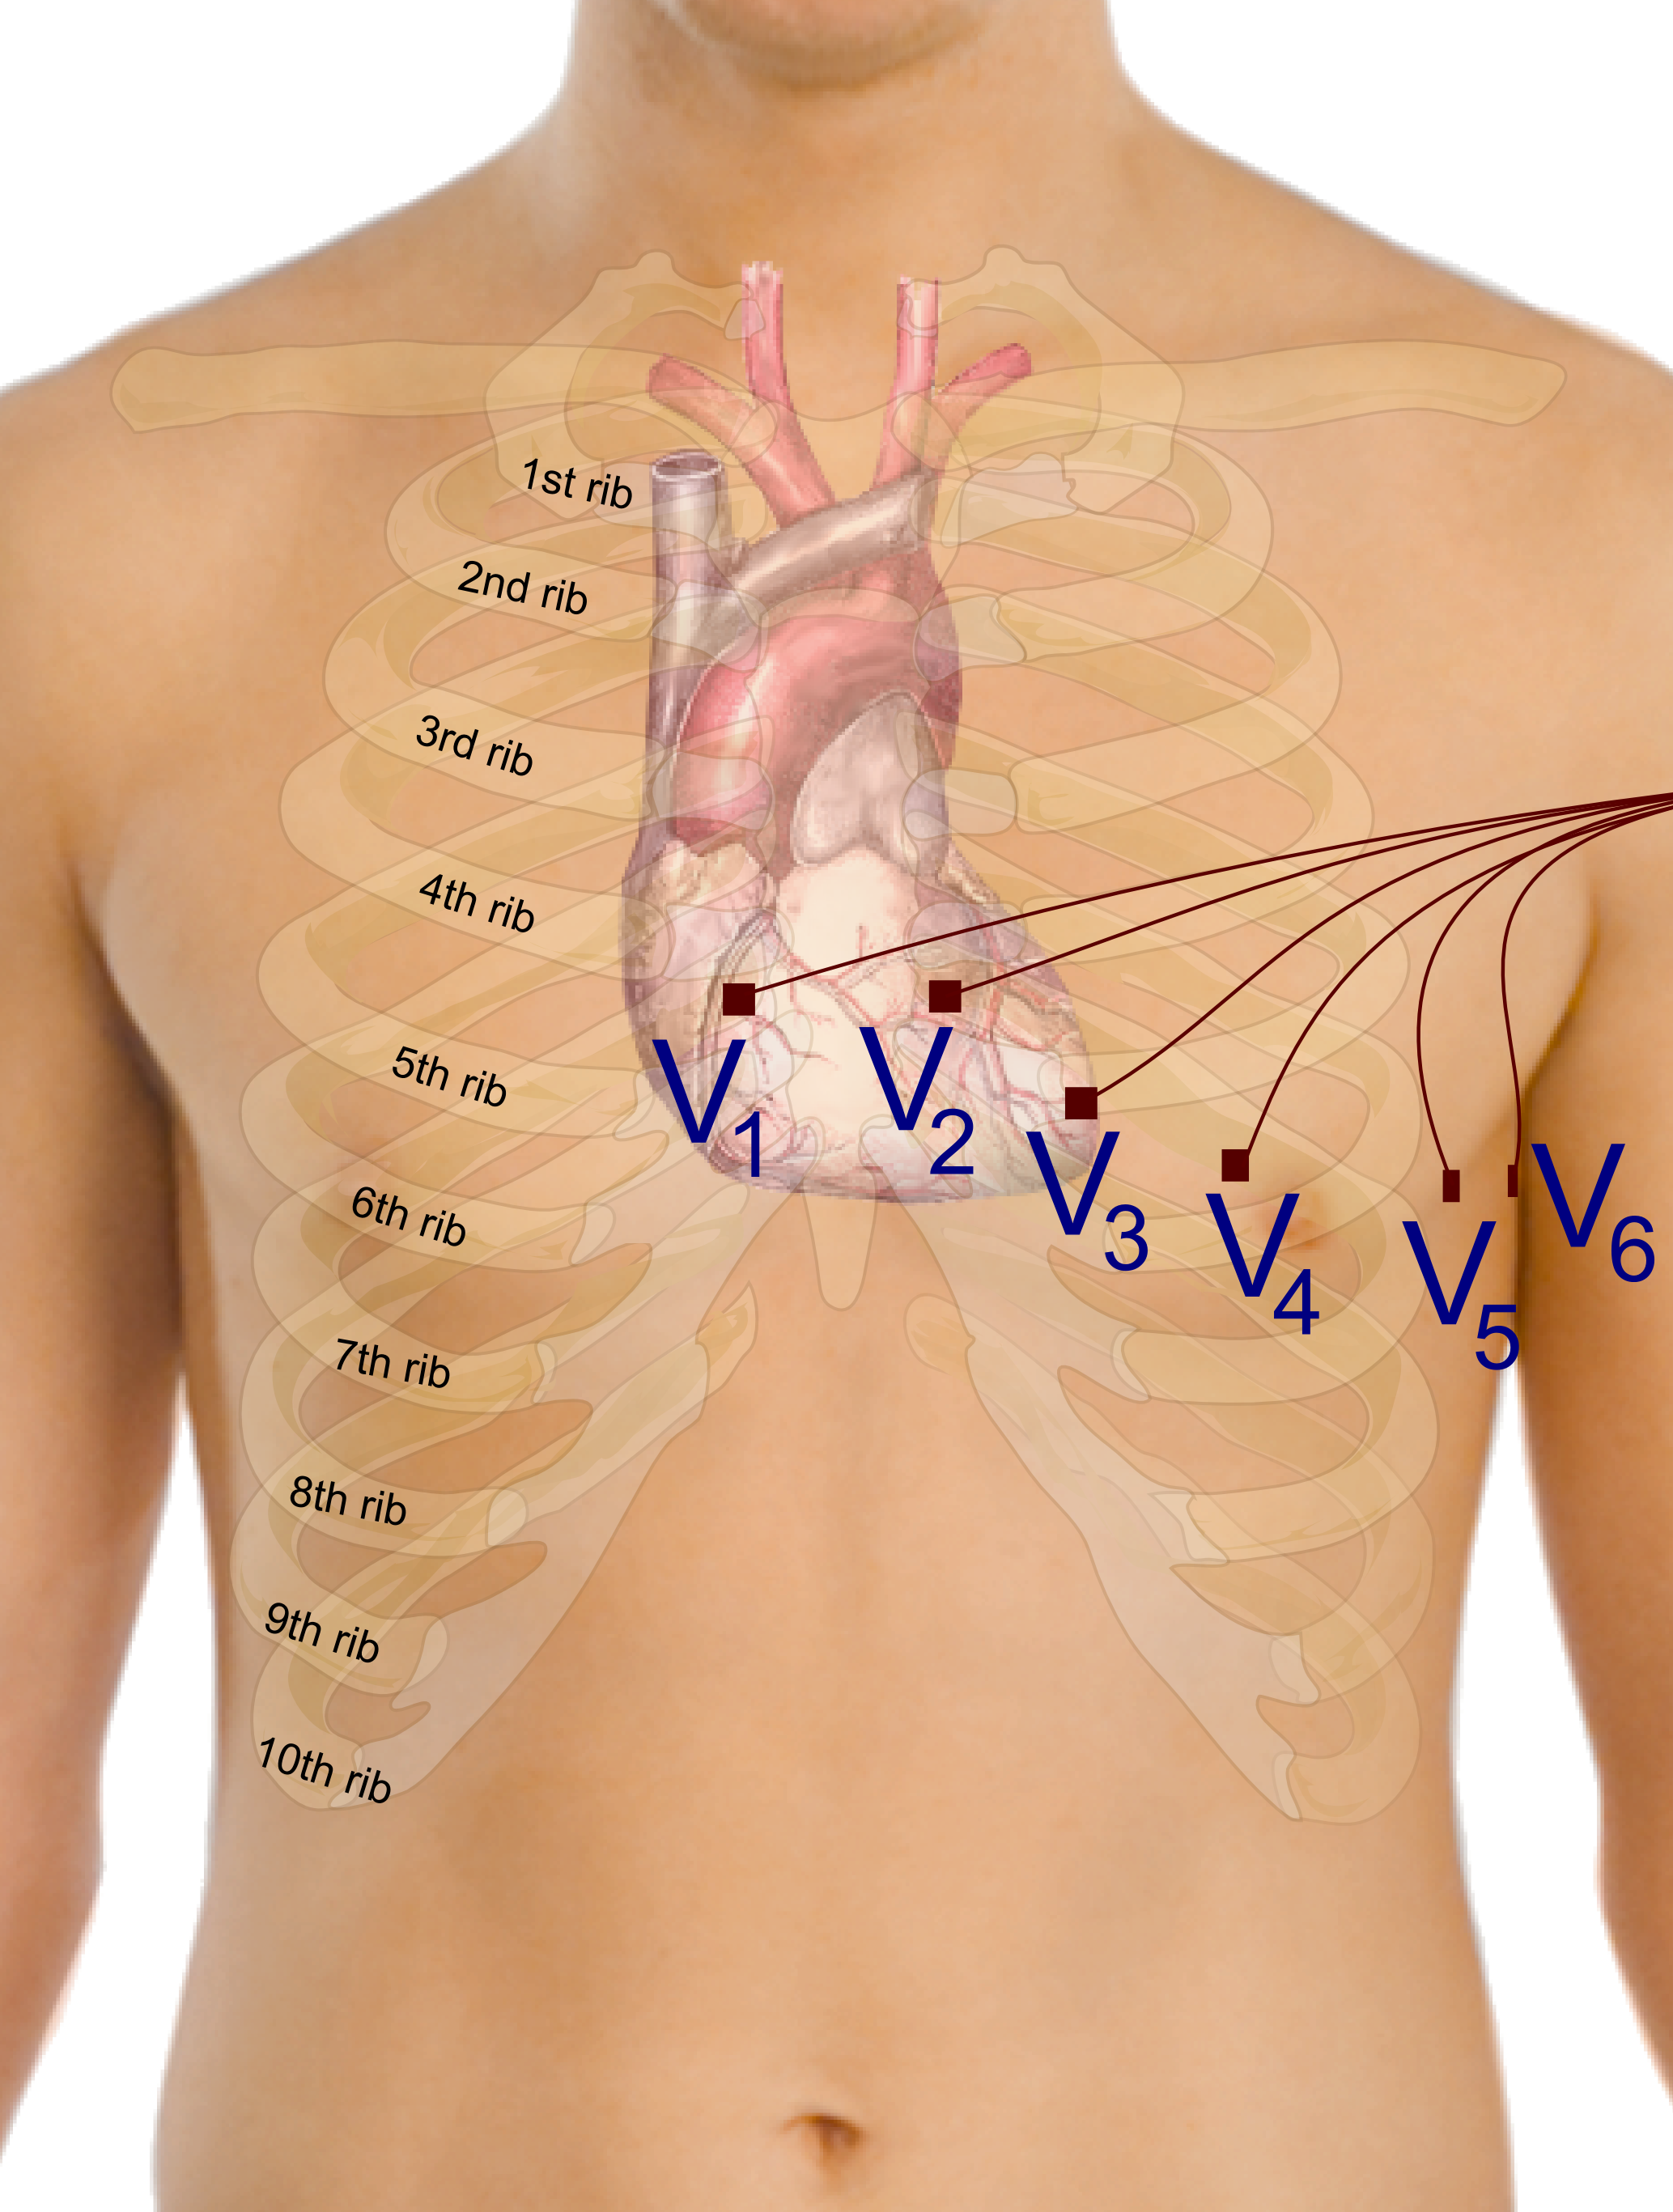 Electrocardiography Invention Story Of Ecg By Willem Einthoven Https Uploadwikimediaorg Wikipedia Commons 4 41 Precordial Leads In